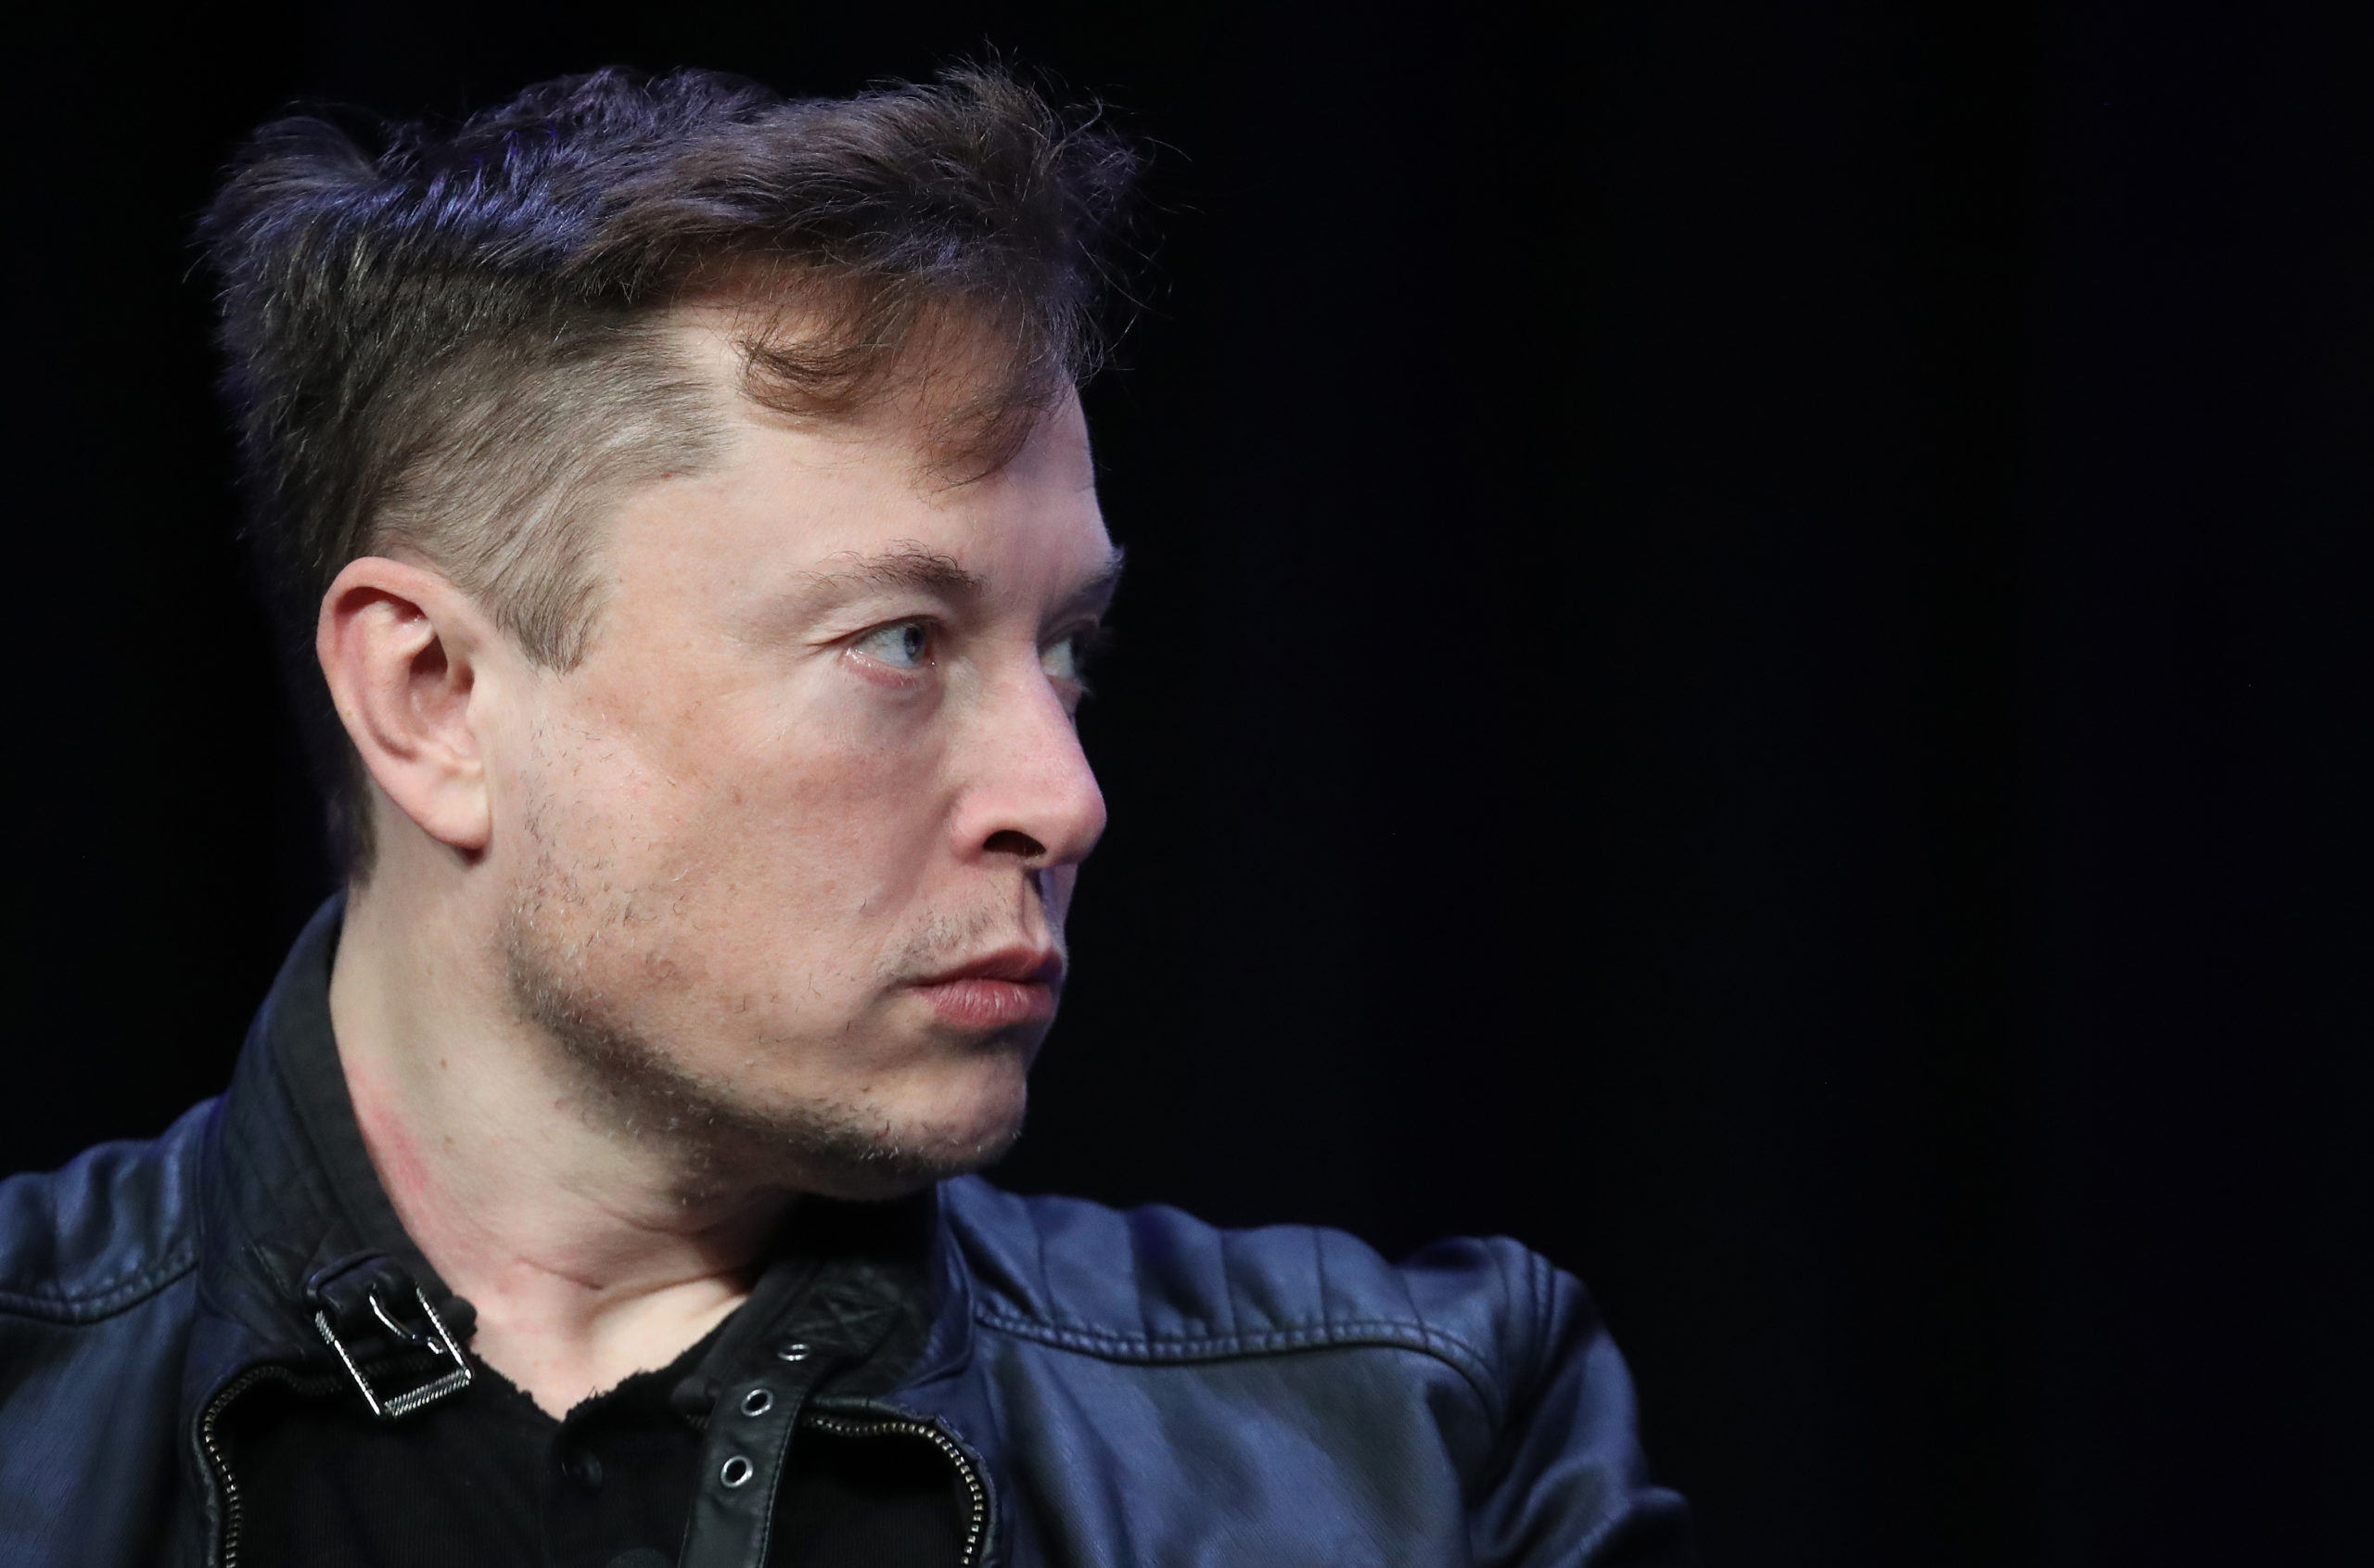 Elon Musk's SpaceX Wins $2.9 Billion Nasa Lunar ContractMediaitesubscribesubscribeYou must be subscribed to view this content.